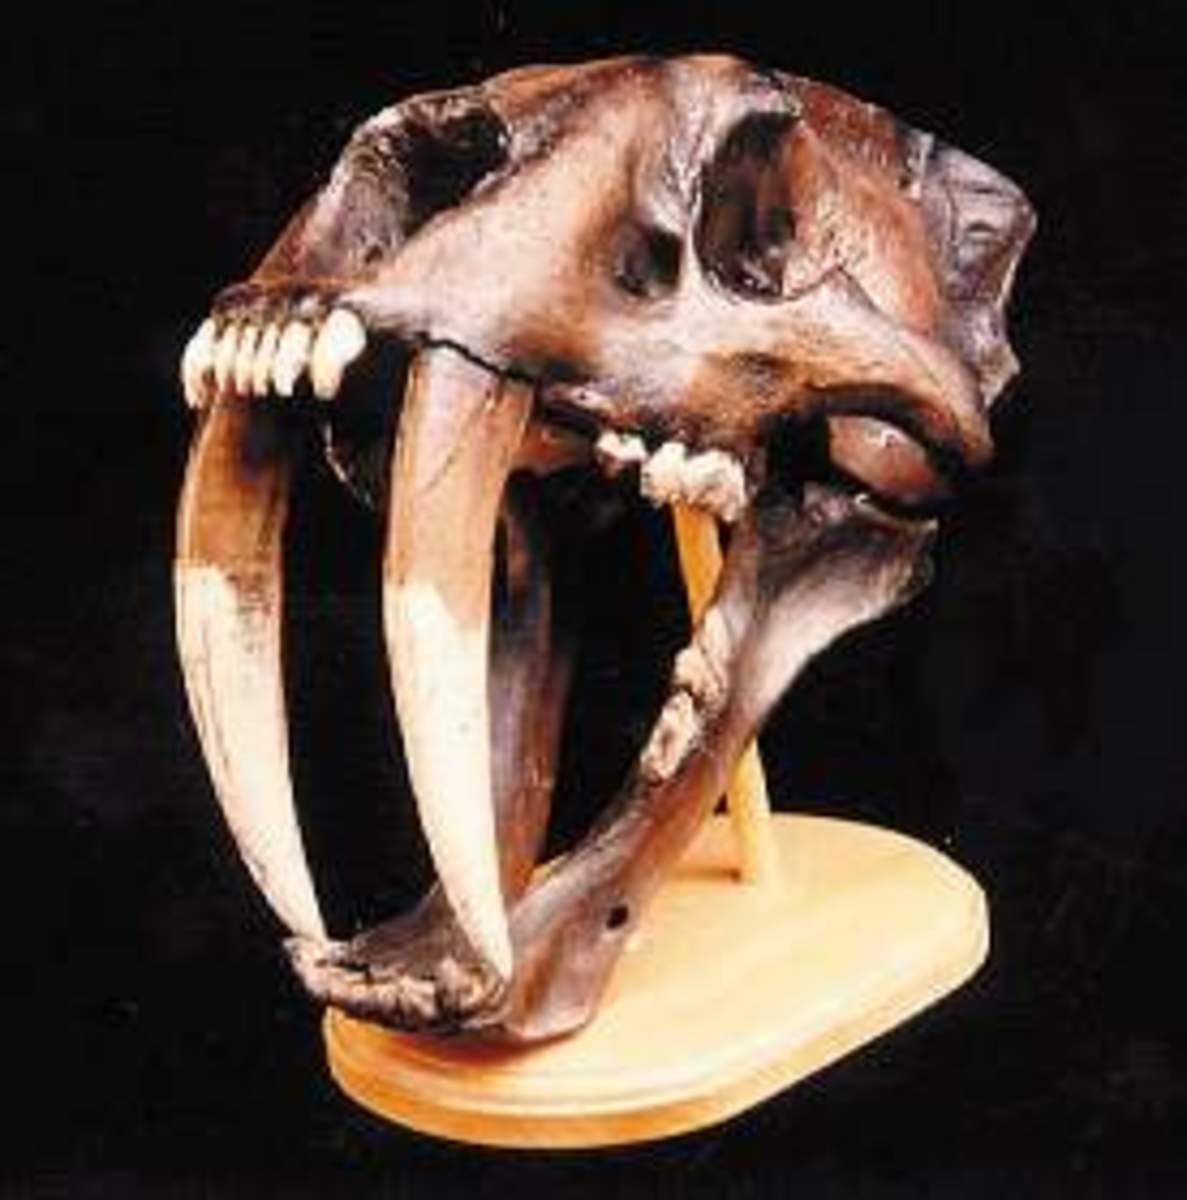 Sabre toothed cats have evolved, gone extinct, and evolved again many times. Some think they may be on their way back.